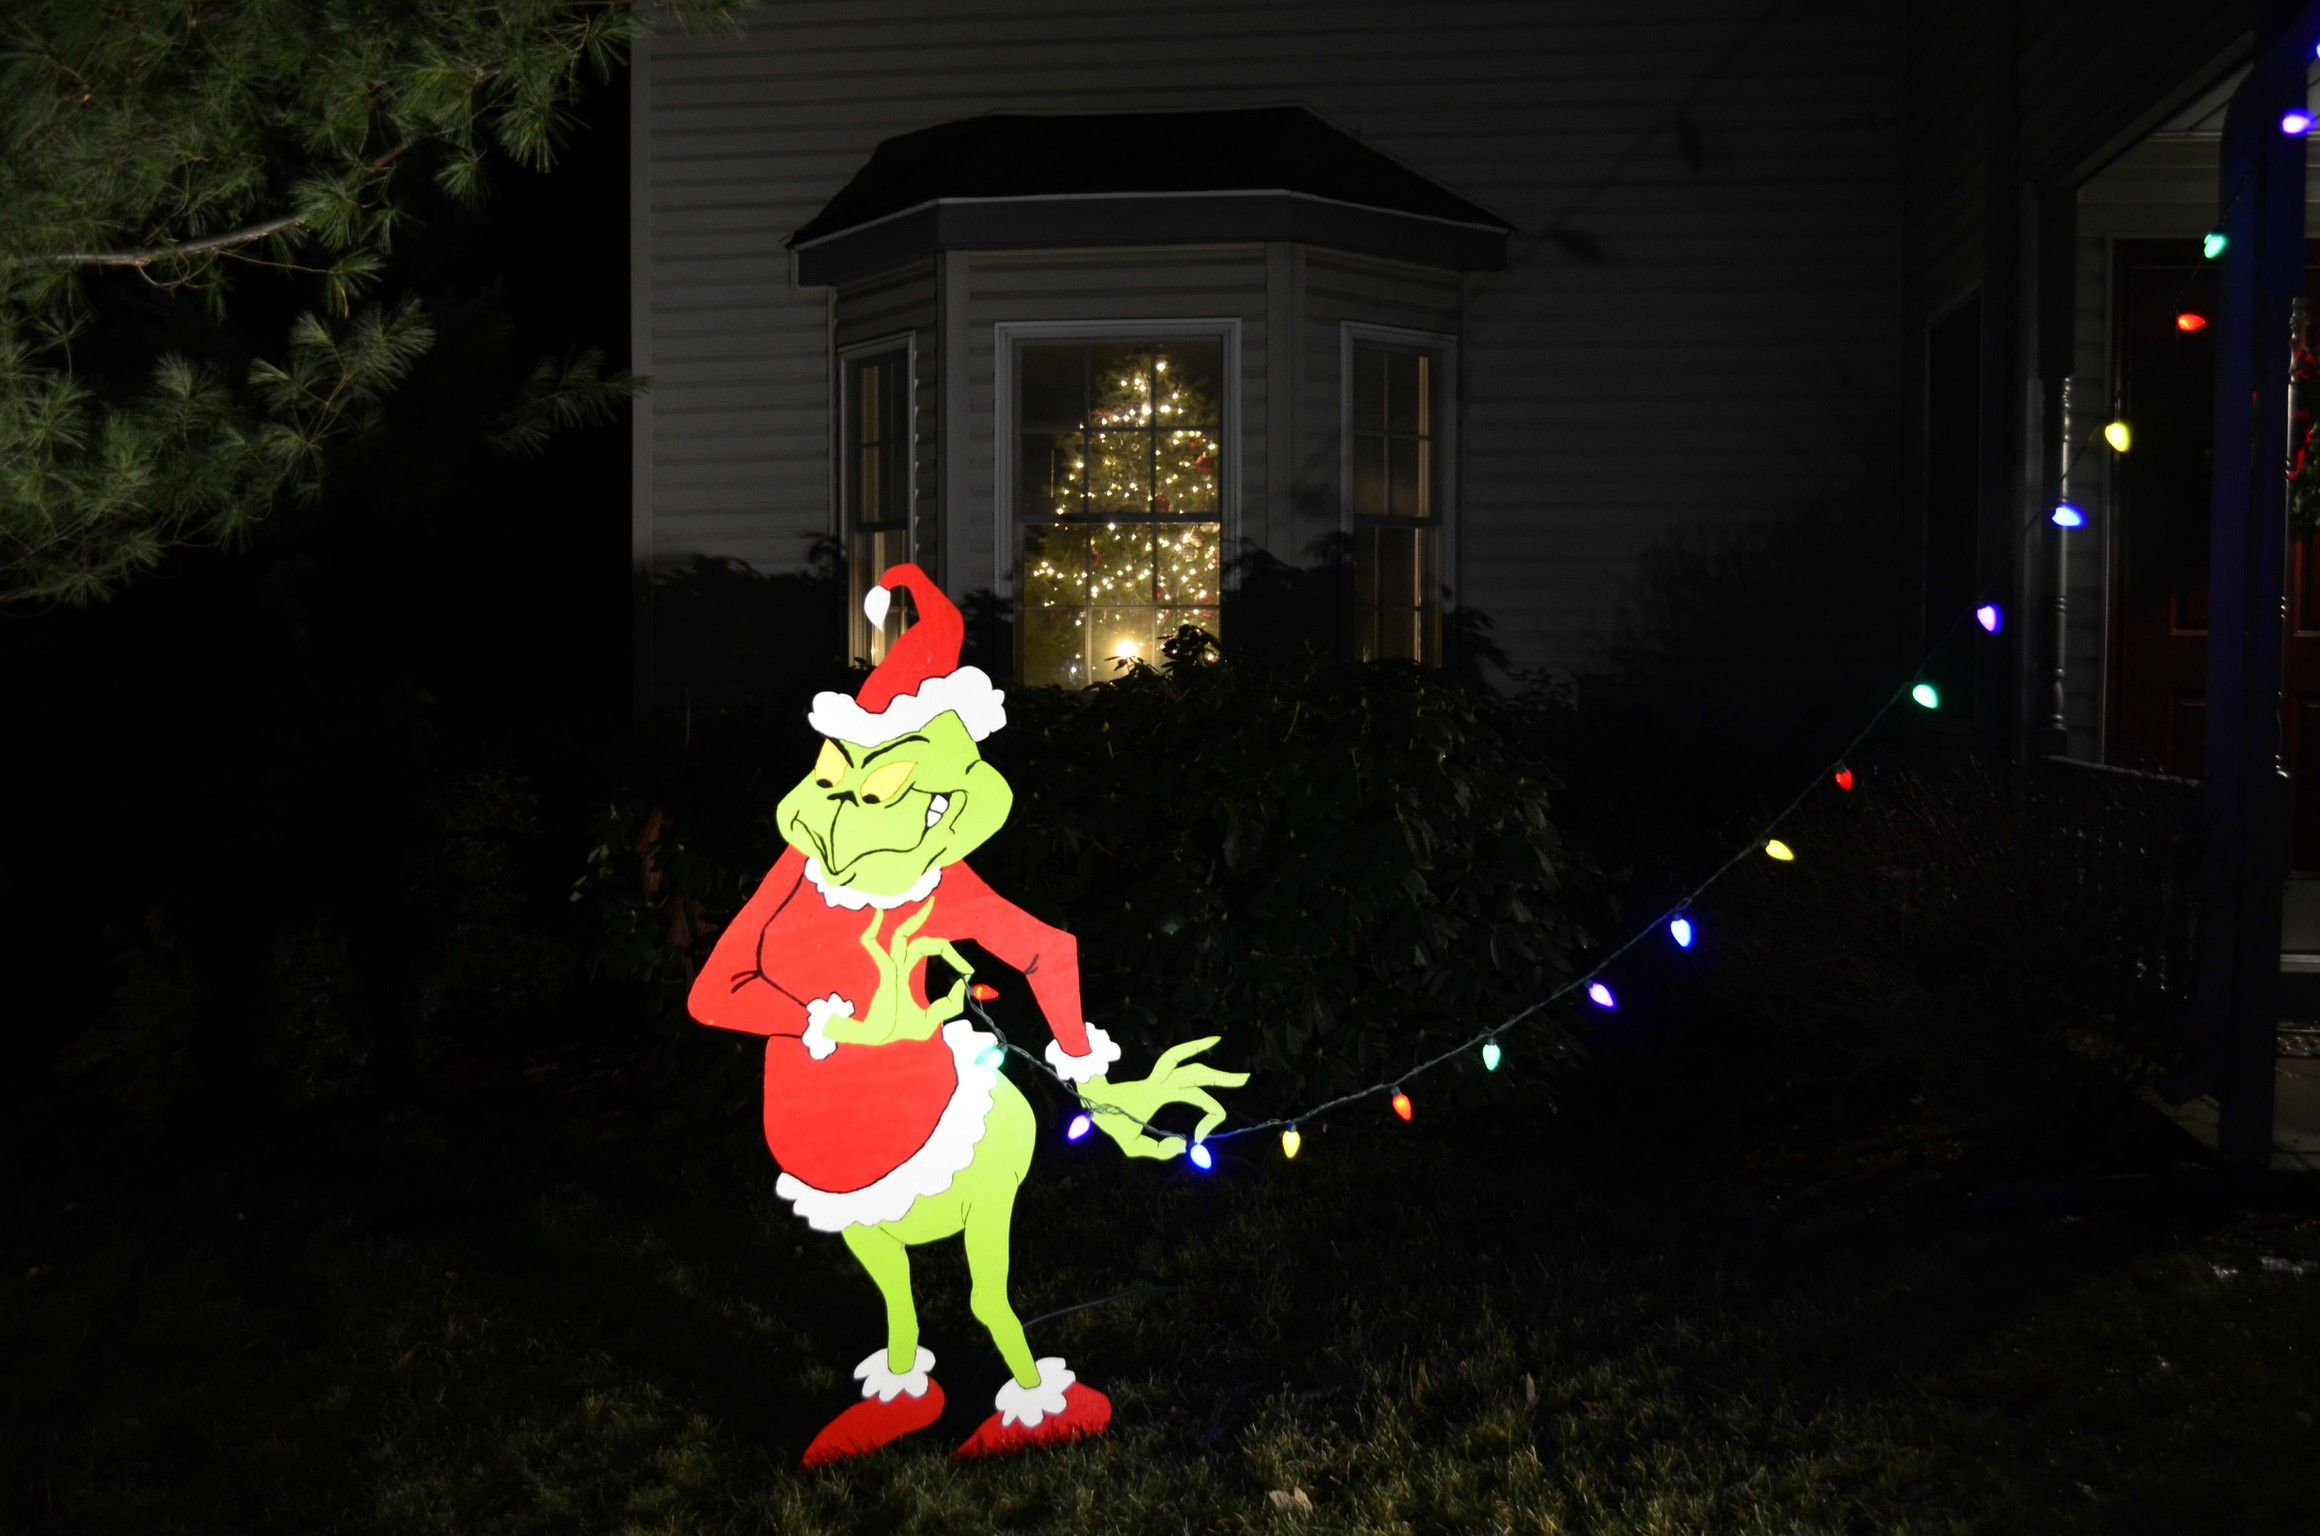 Grinch Grinch Decorations Grinch Stealing Lights Christmas Lights